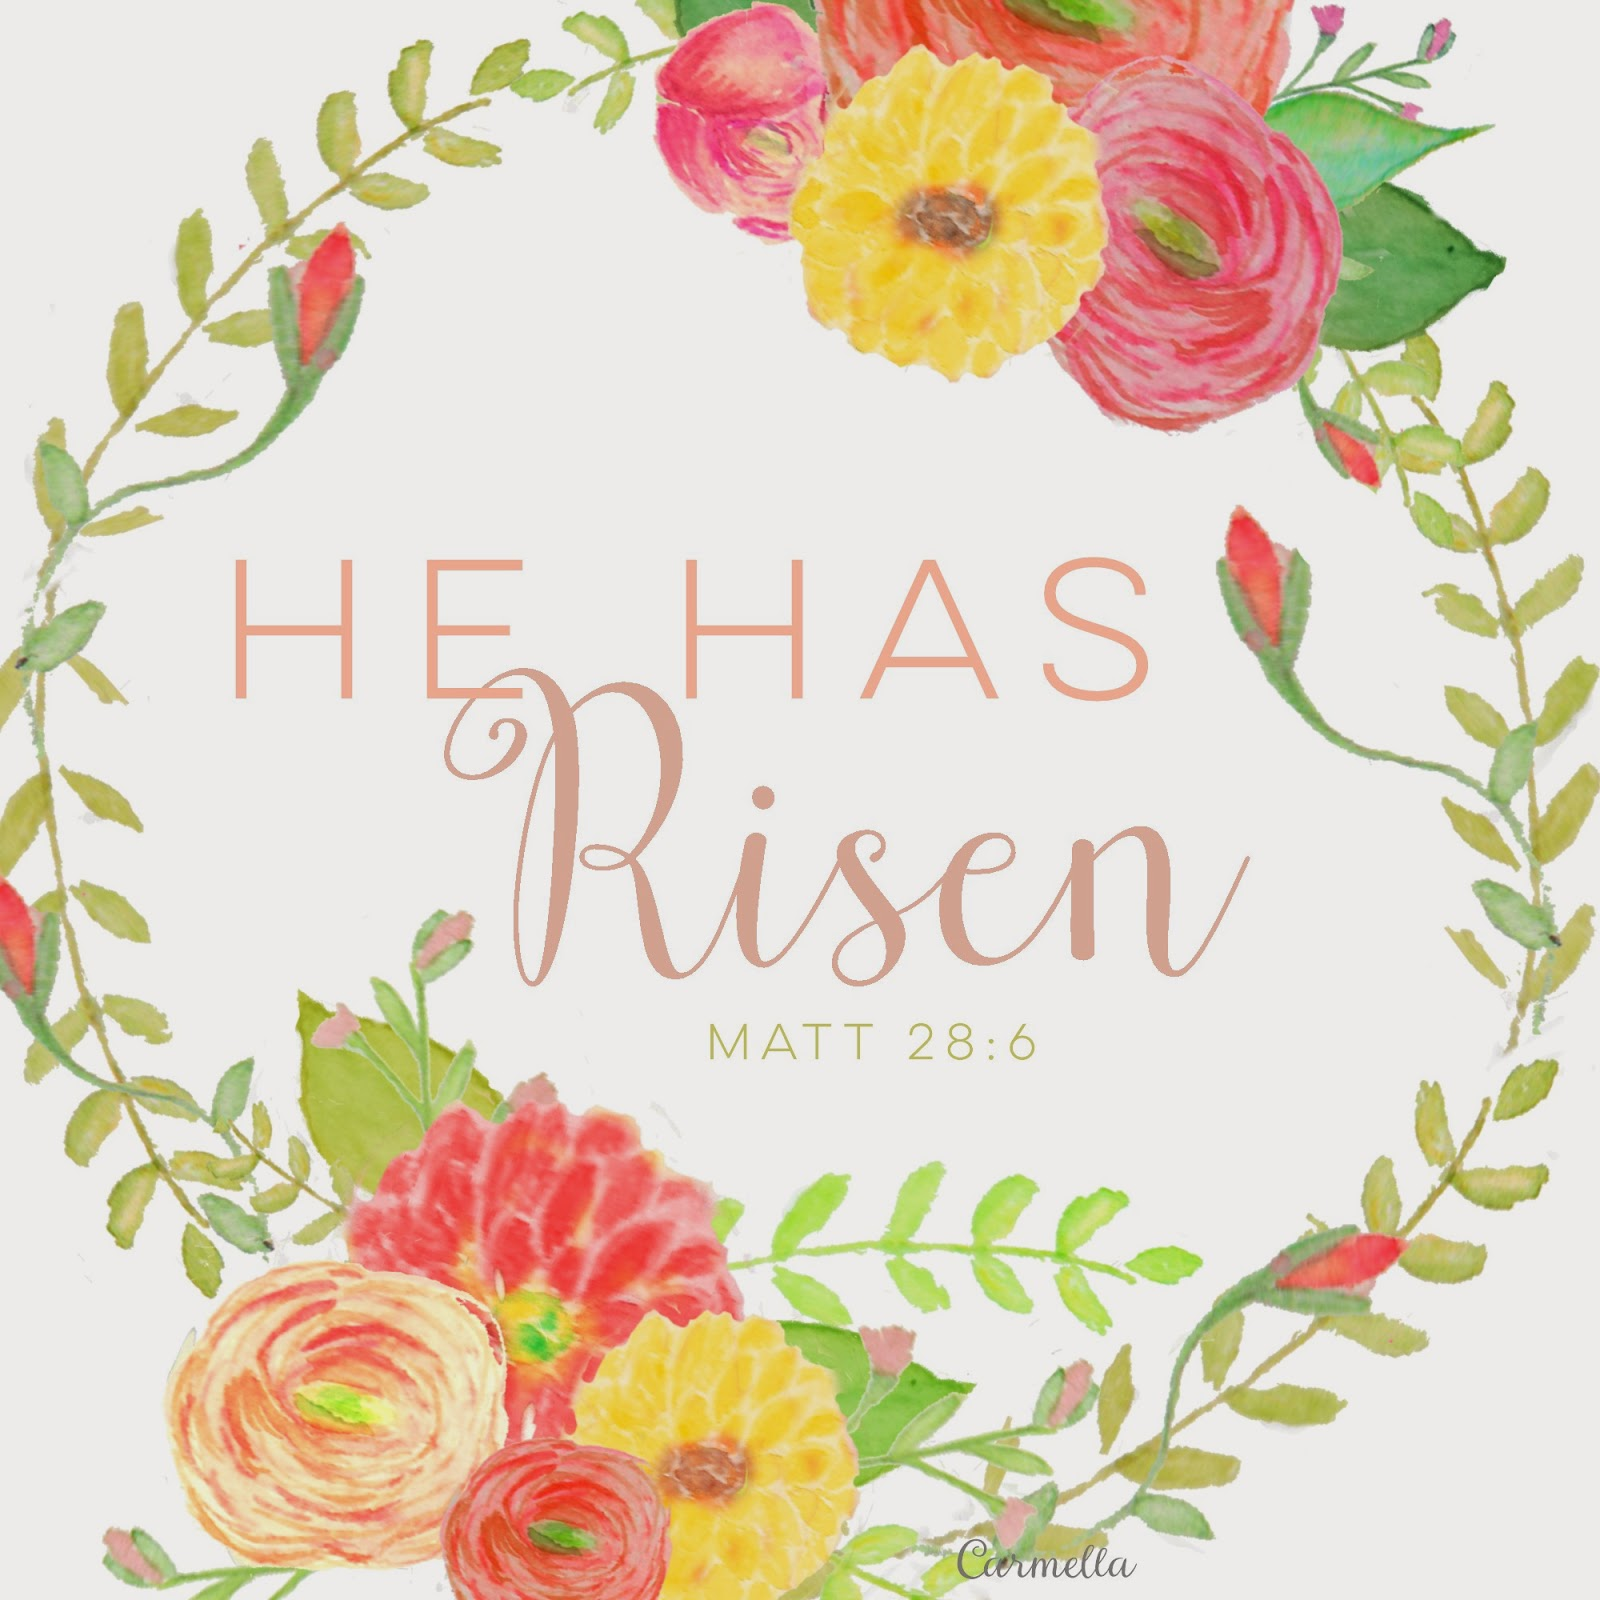 Modest image intended for he is risen printable